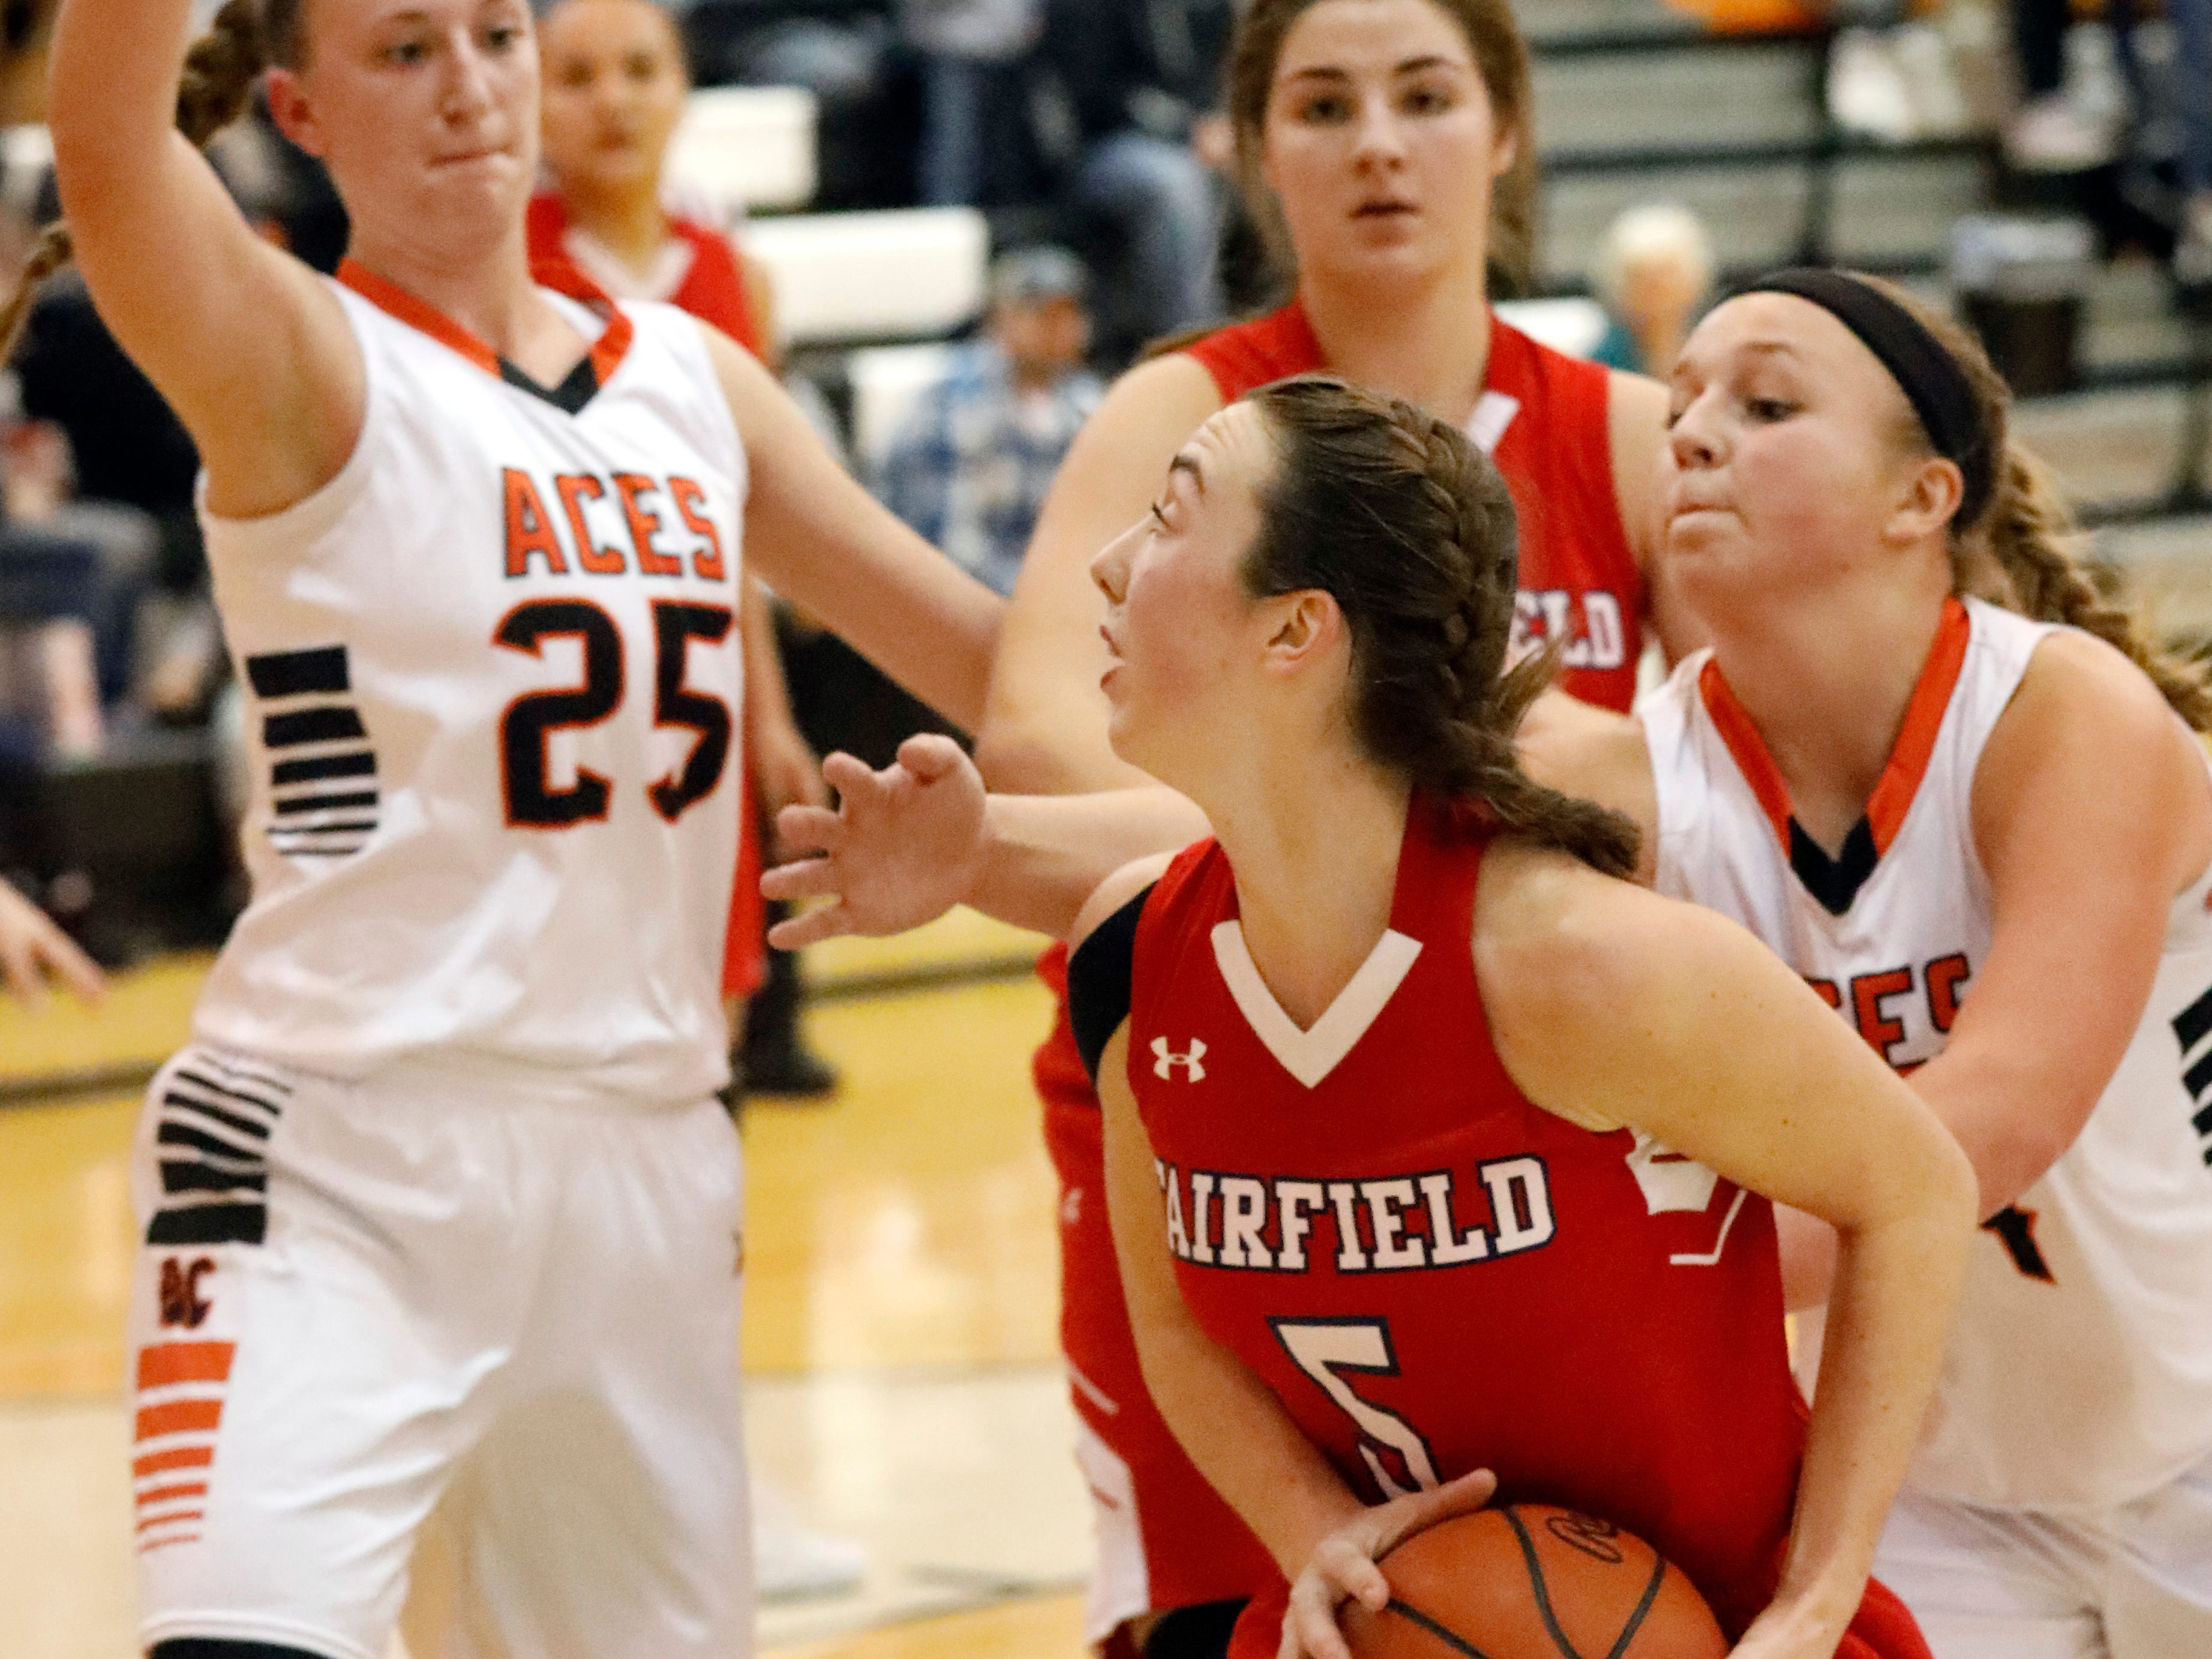 Fairfield Christian's Hope Custer tries to drive through the Amanda-Clearcreek defense during Thursday night's game, Jan. 31, 2019, at Amanda-Clearcreek High School in Amanda. The Aces won the game 51-43.